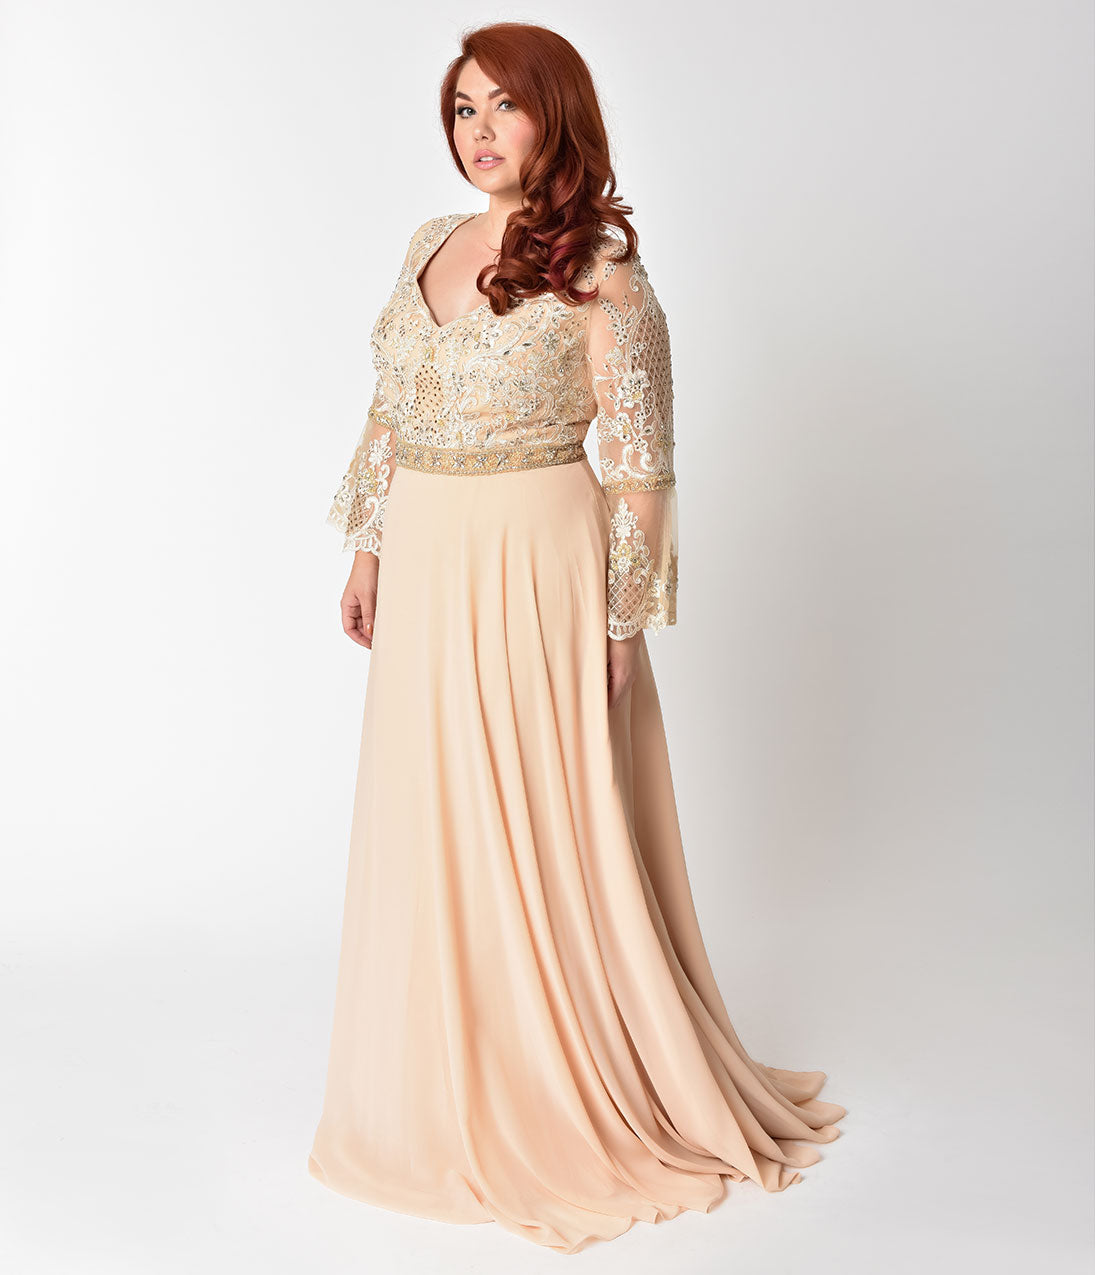 Vintage Evening Dresses and Formal Evening Gowns Plus Size Champagne Beaded Bell Long Sleeve Gown $168.00 AT vintagedancer.com